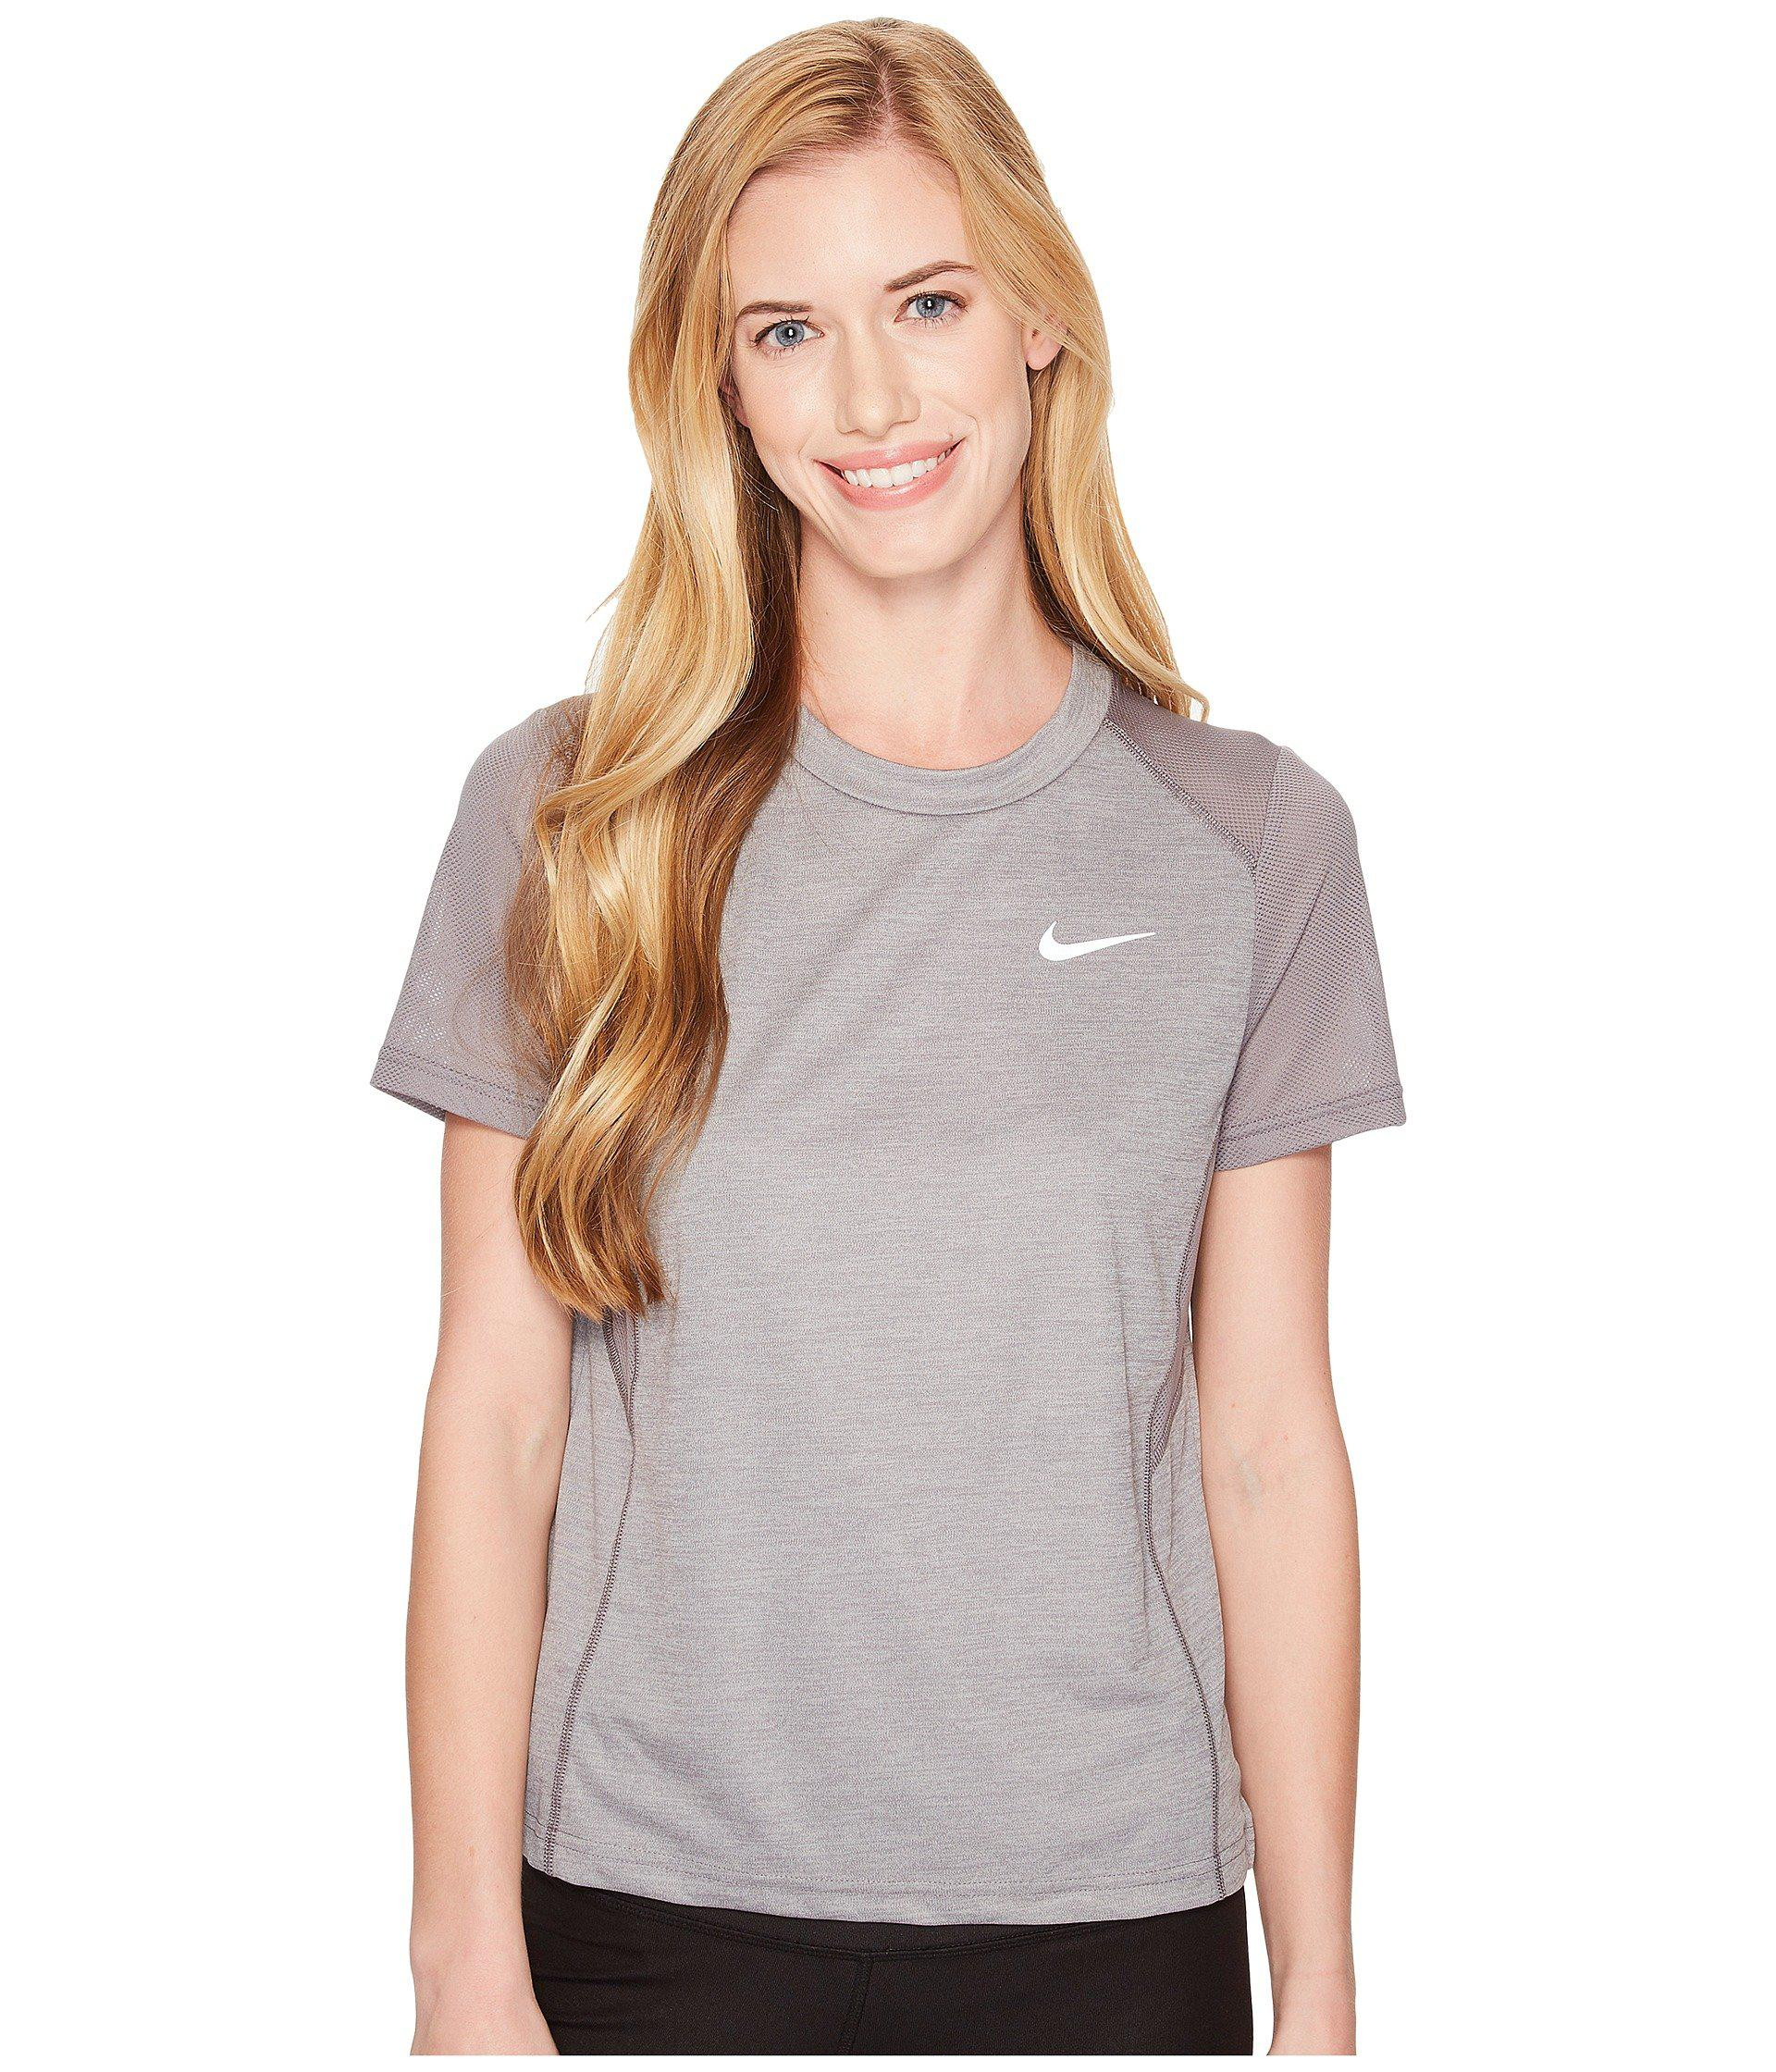 Women's Nike Dry Miler Mesh Running Top | Products